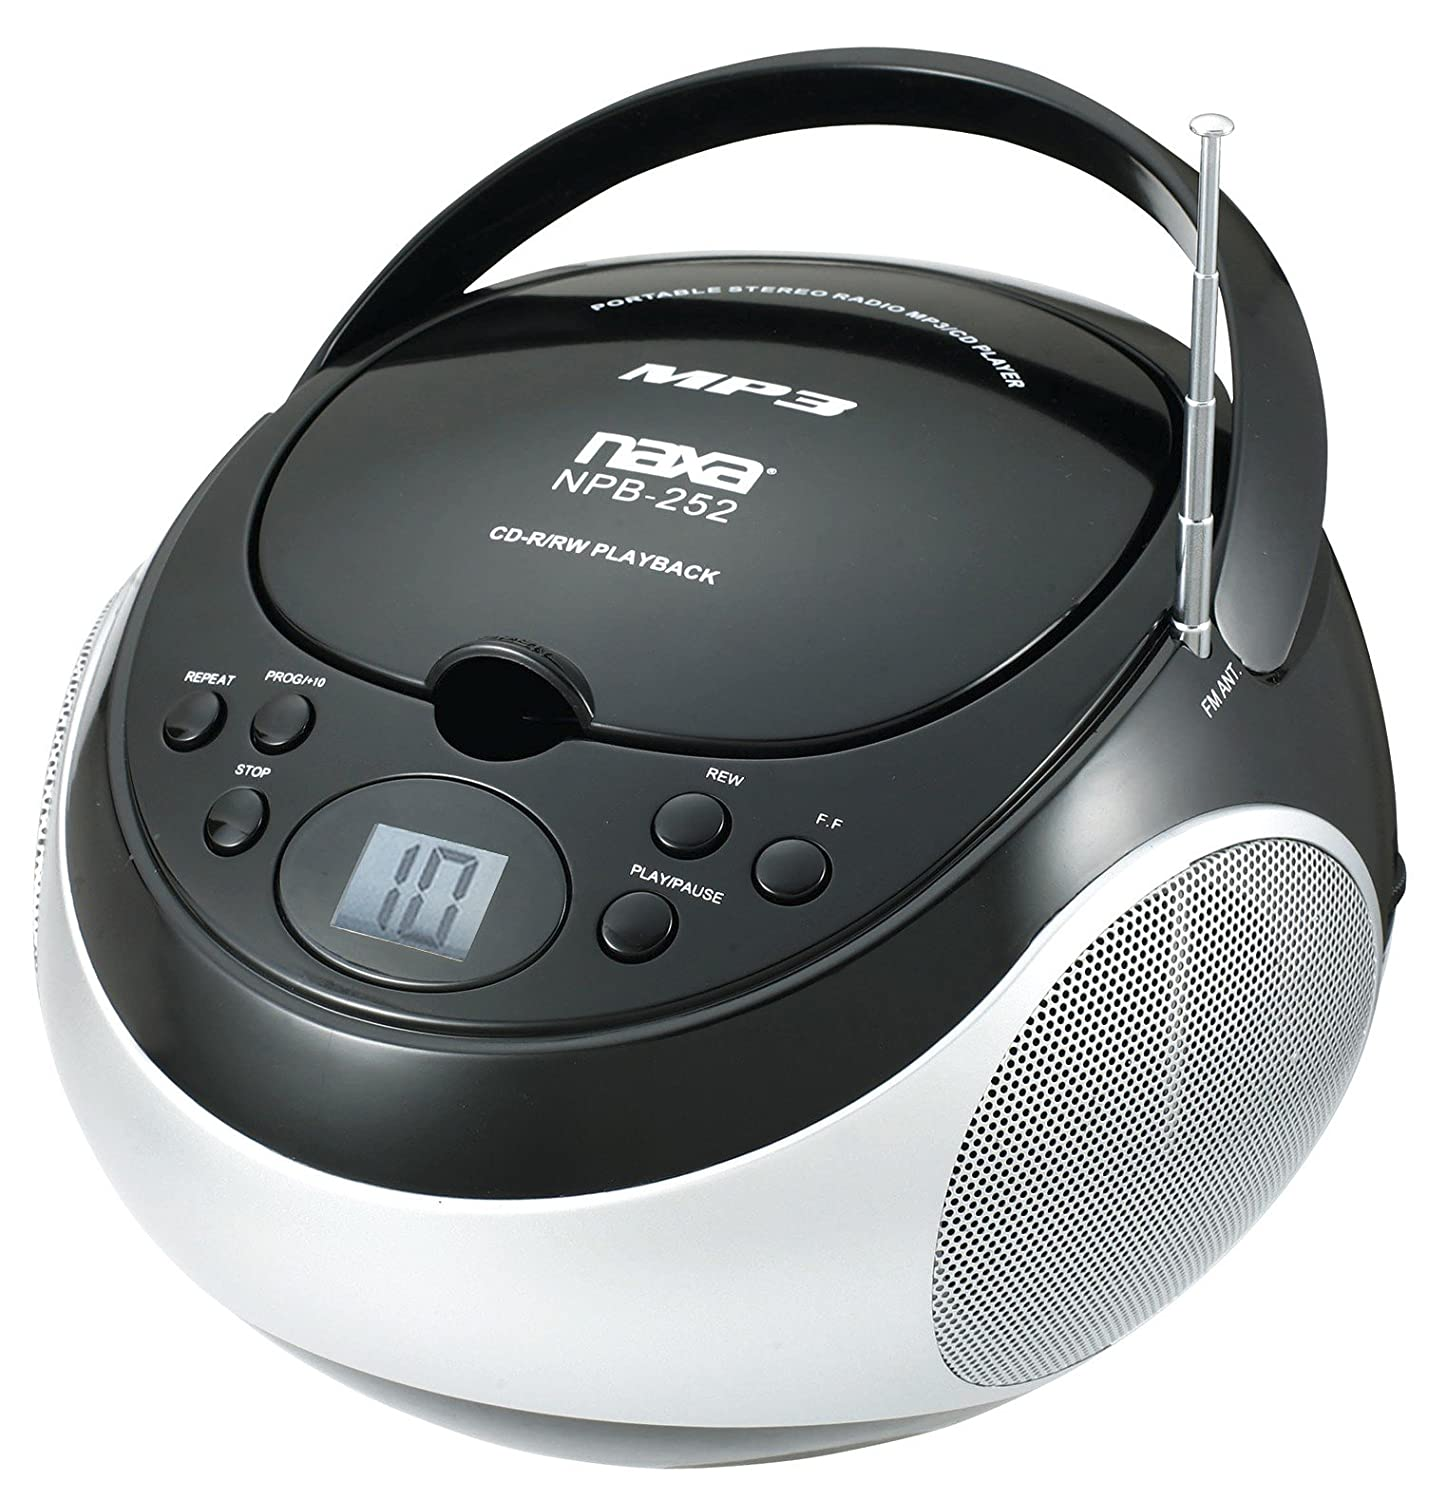 NAXA NBP252-BLK Portable MP3/CD Player with AM/FM Stereo Radio (Black) NAXA Electronics MSS1101938T02